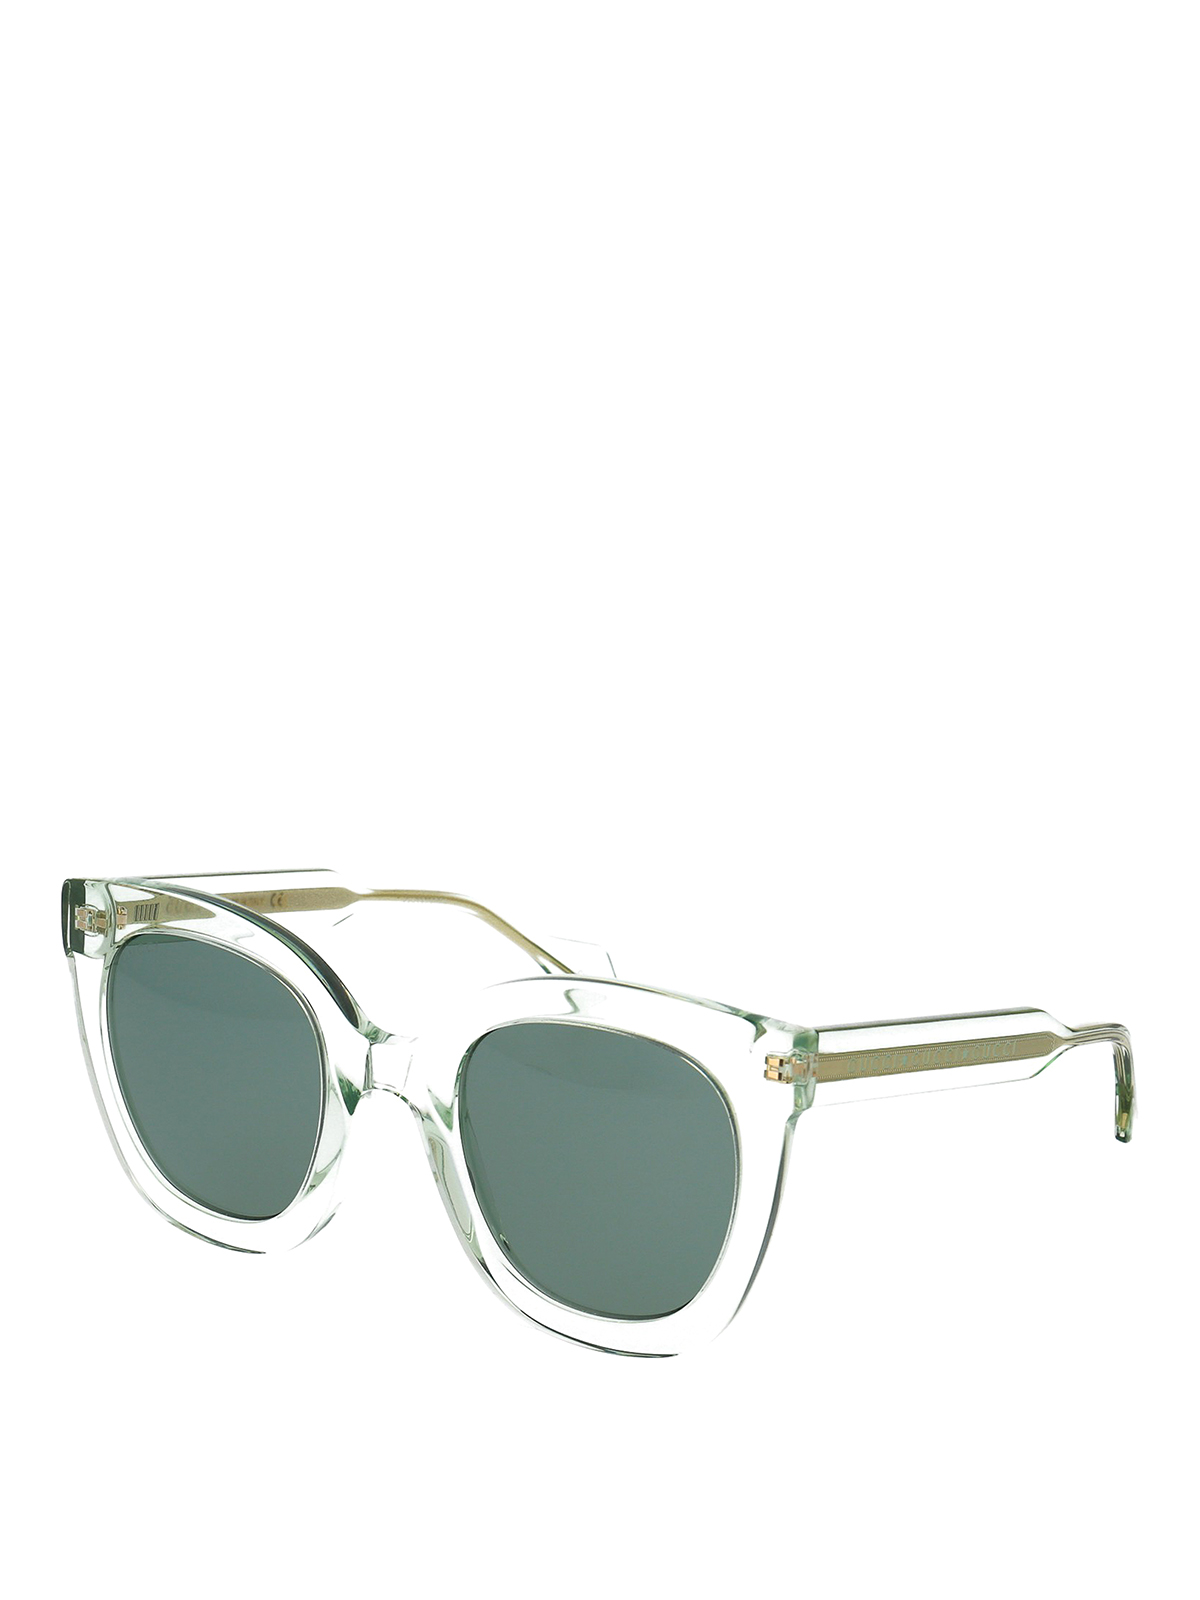 Gucci Sheer Frame Round Sunglasses